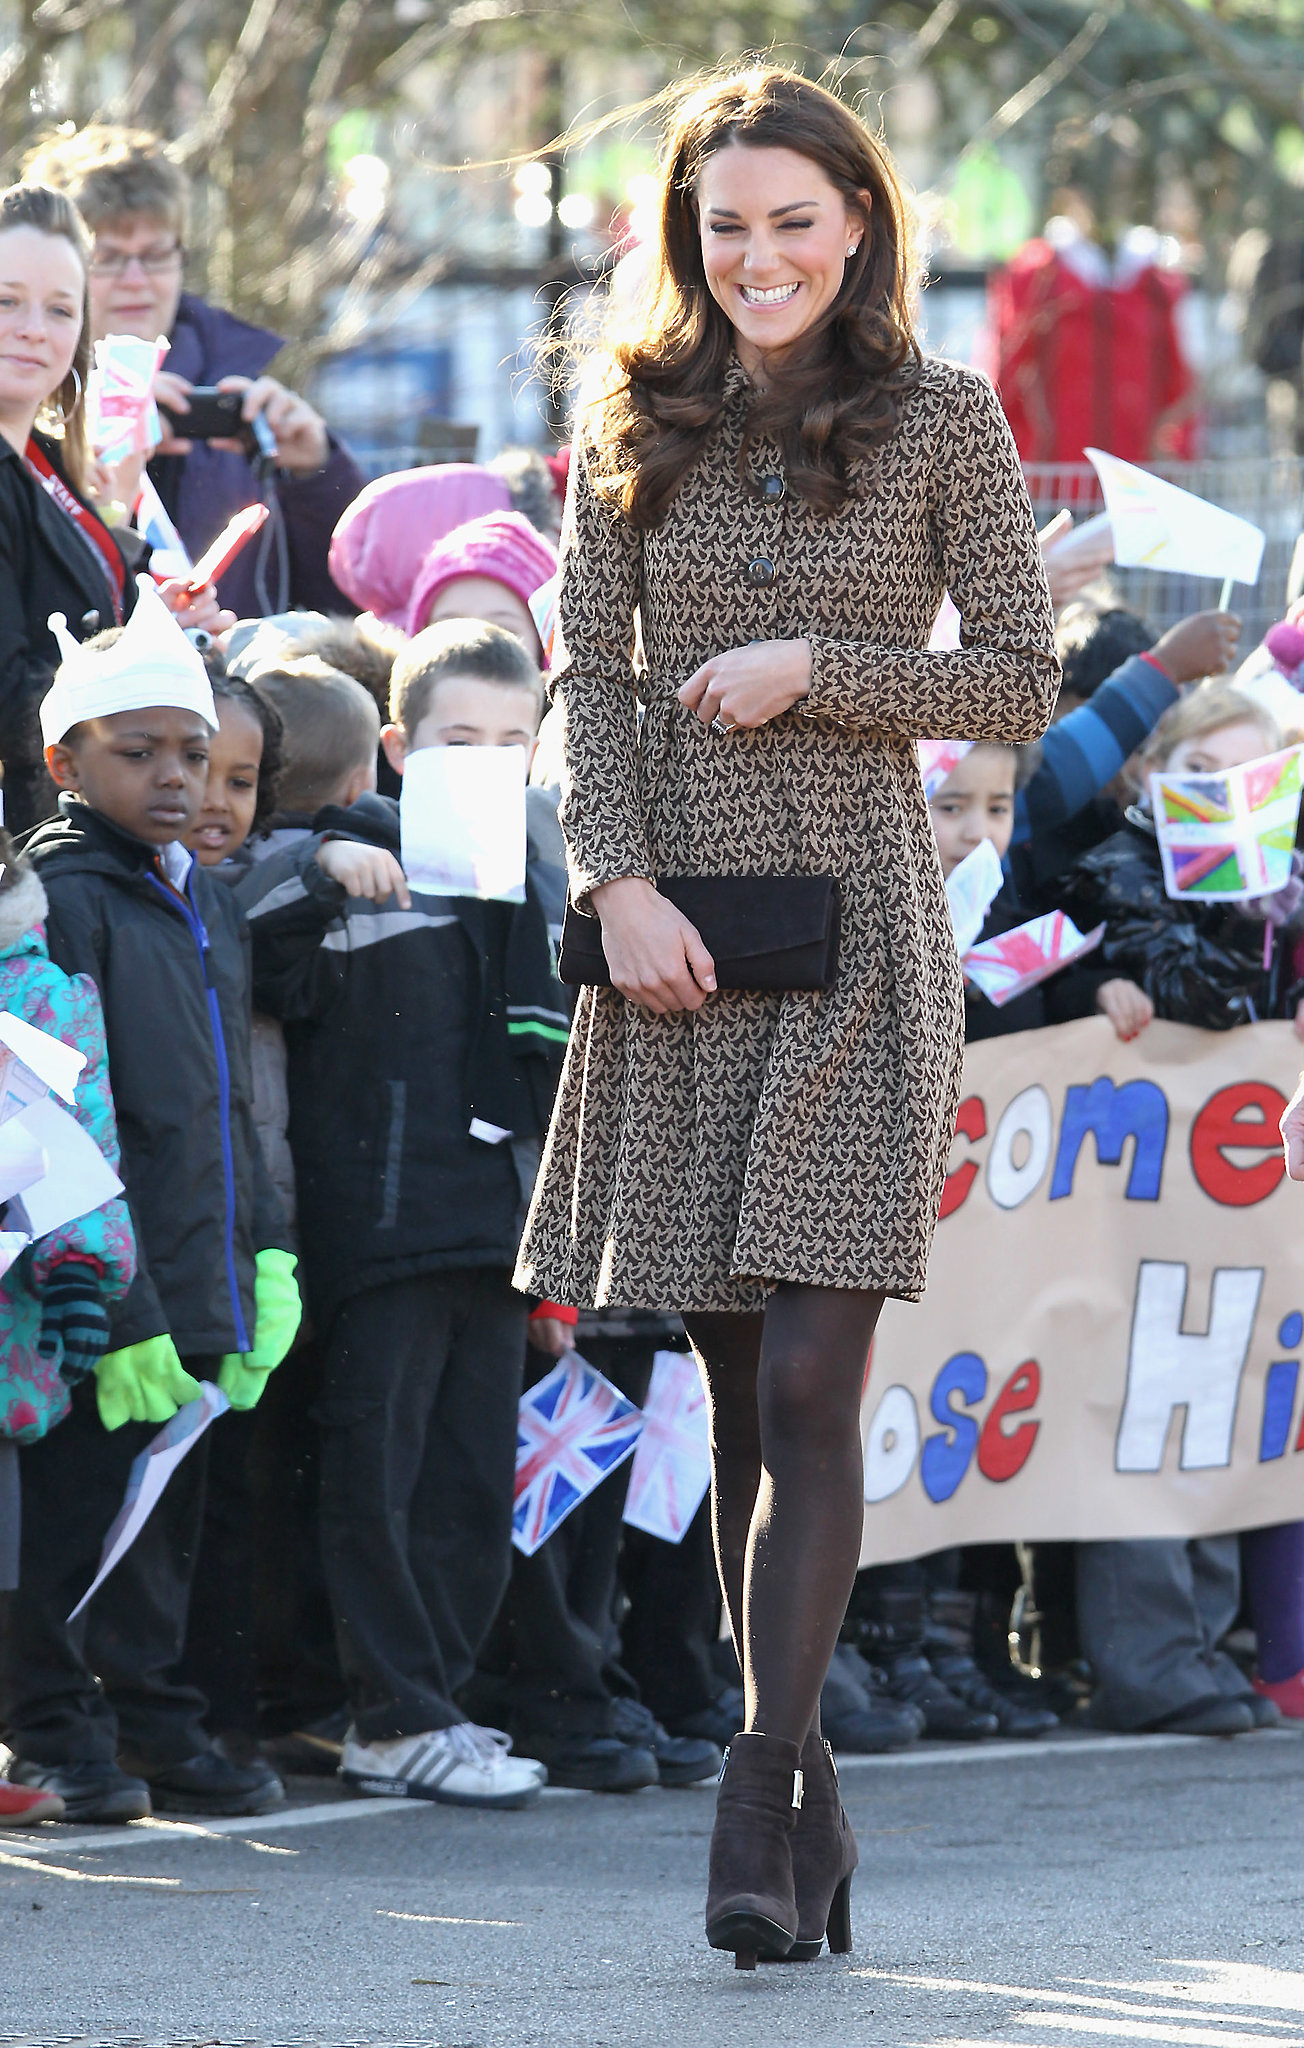 She got a giggle while visiting the Rose Hill Primary School in Oxford, England, in February 2012.